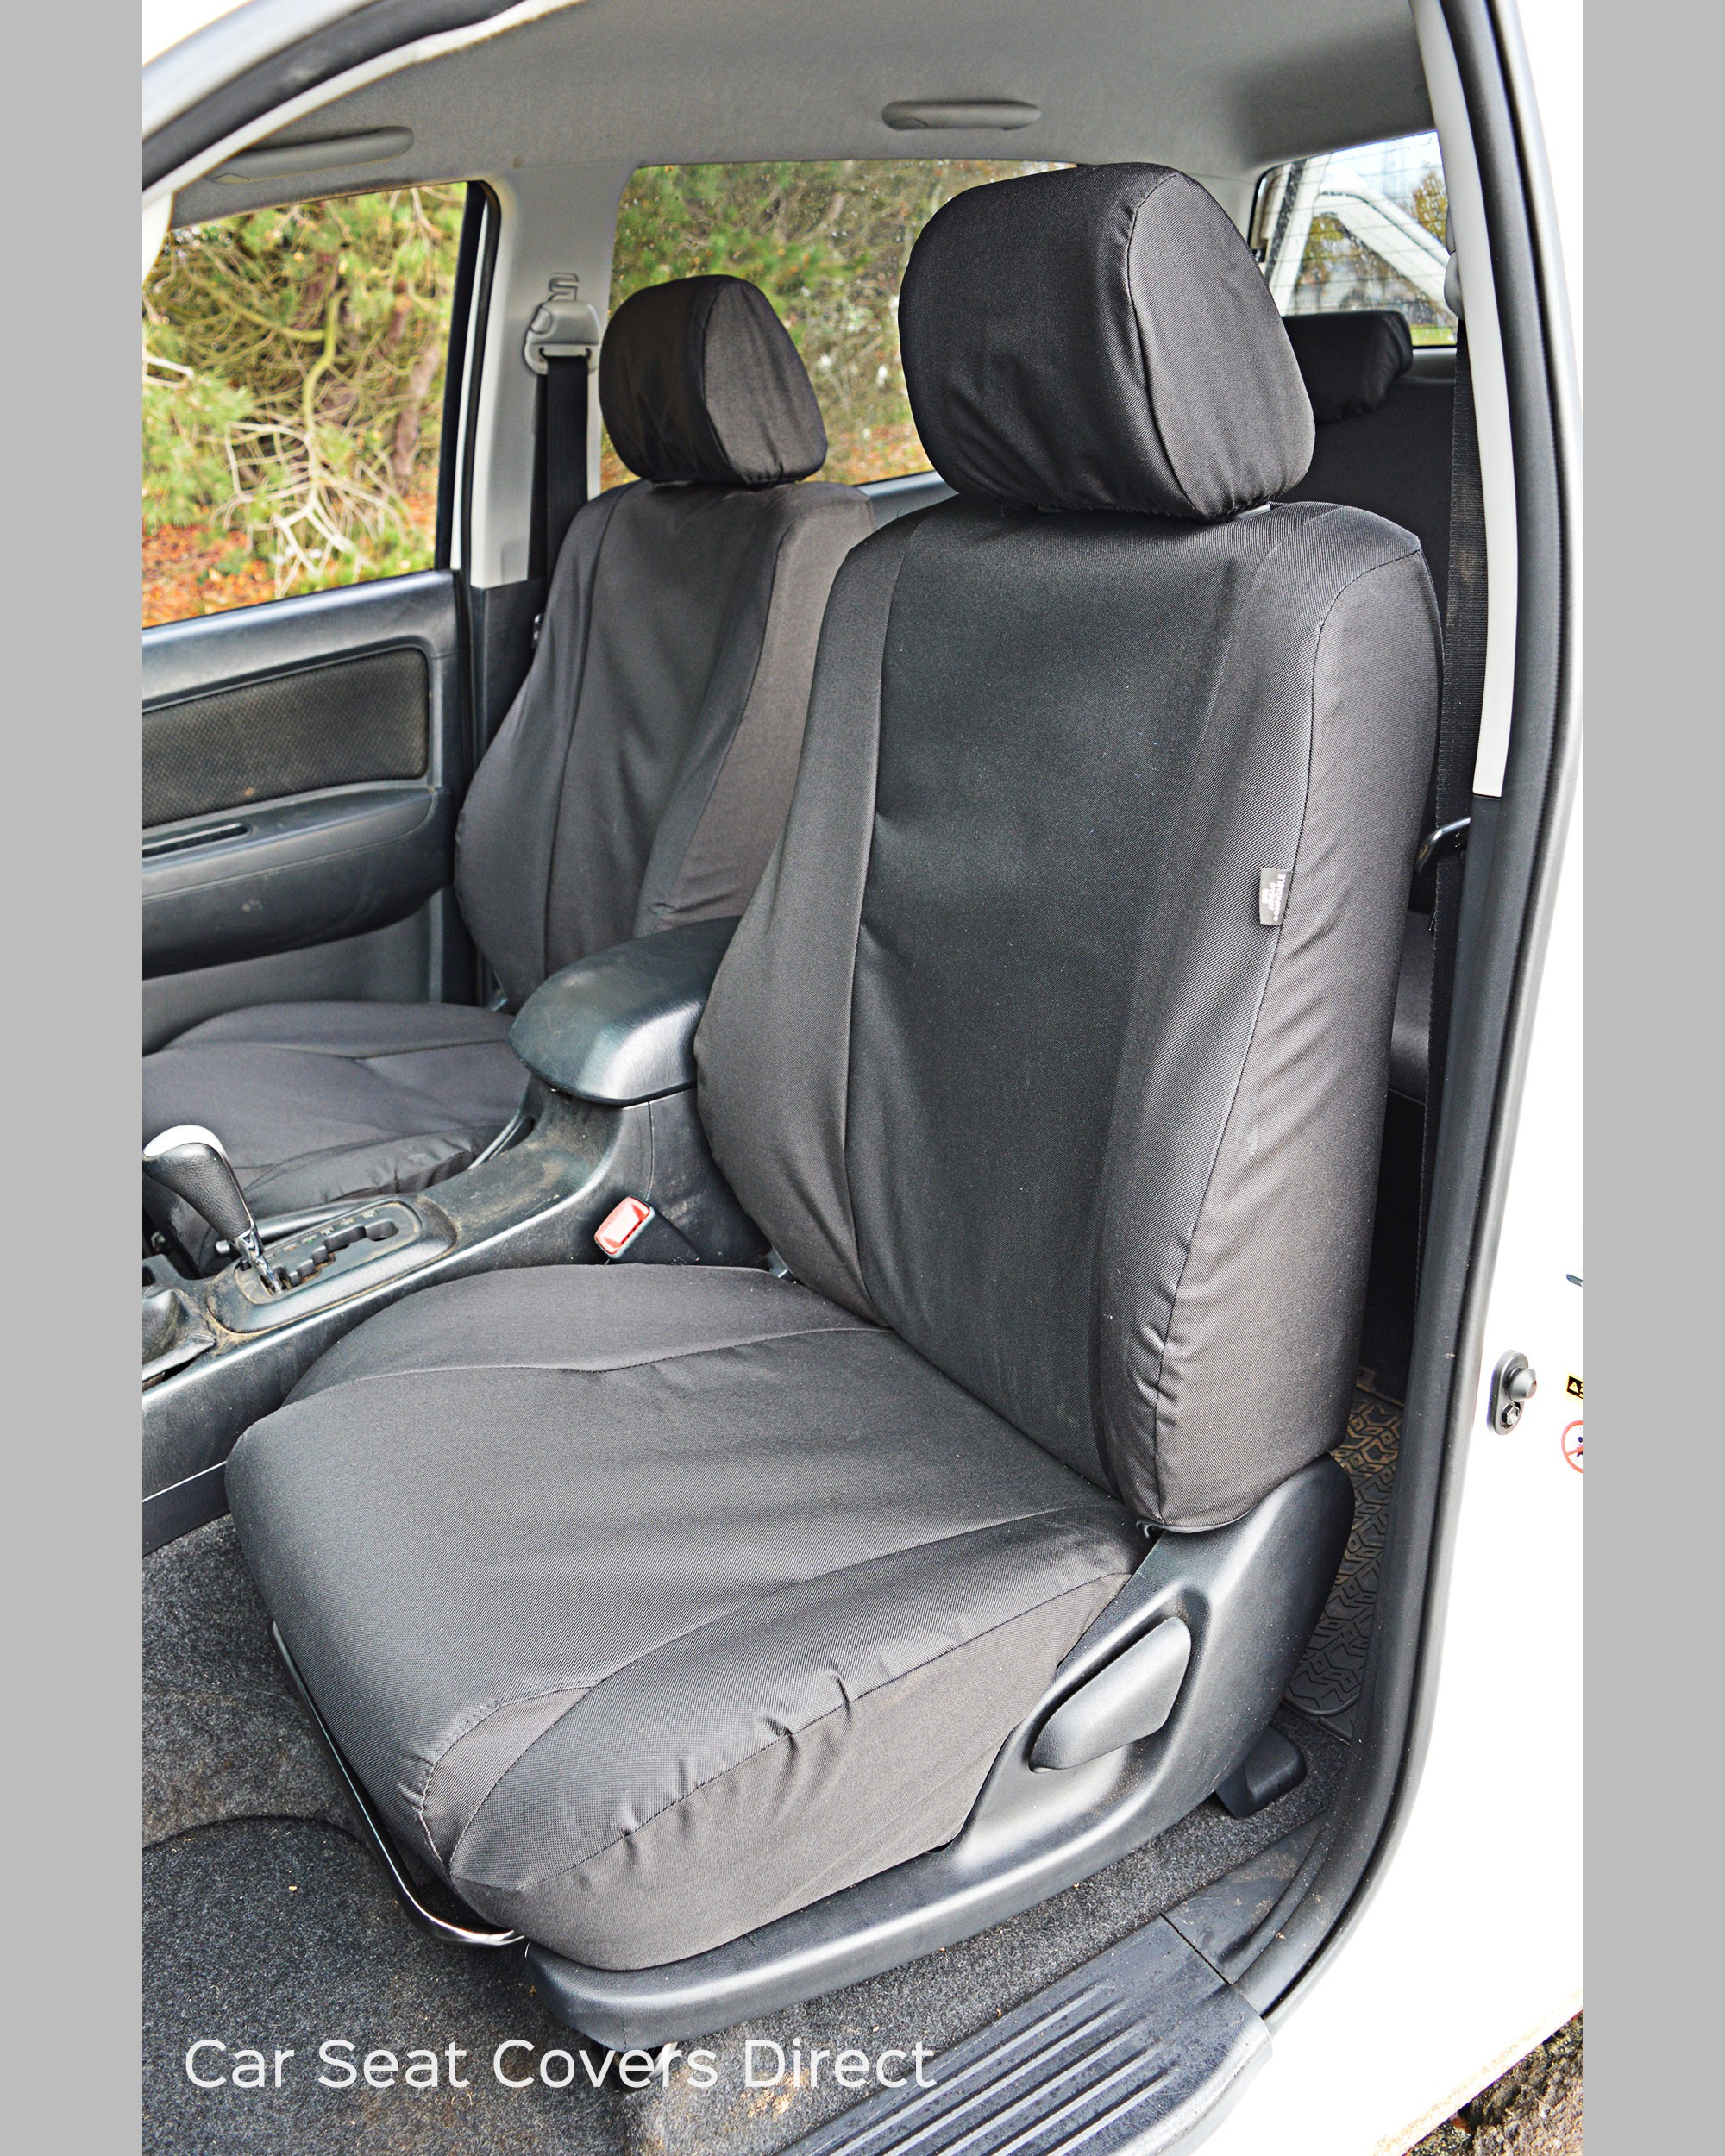 Toyota Hilux Heavy Duty Seat Covers Passenger Seat